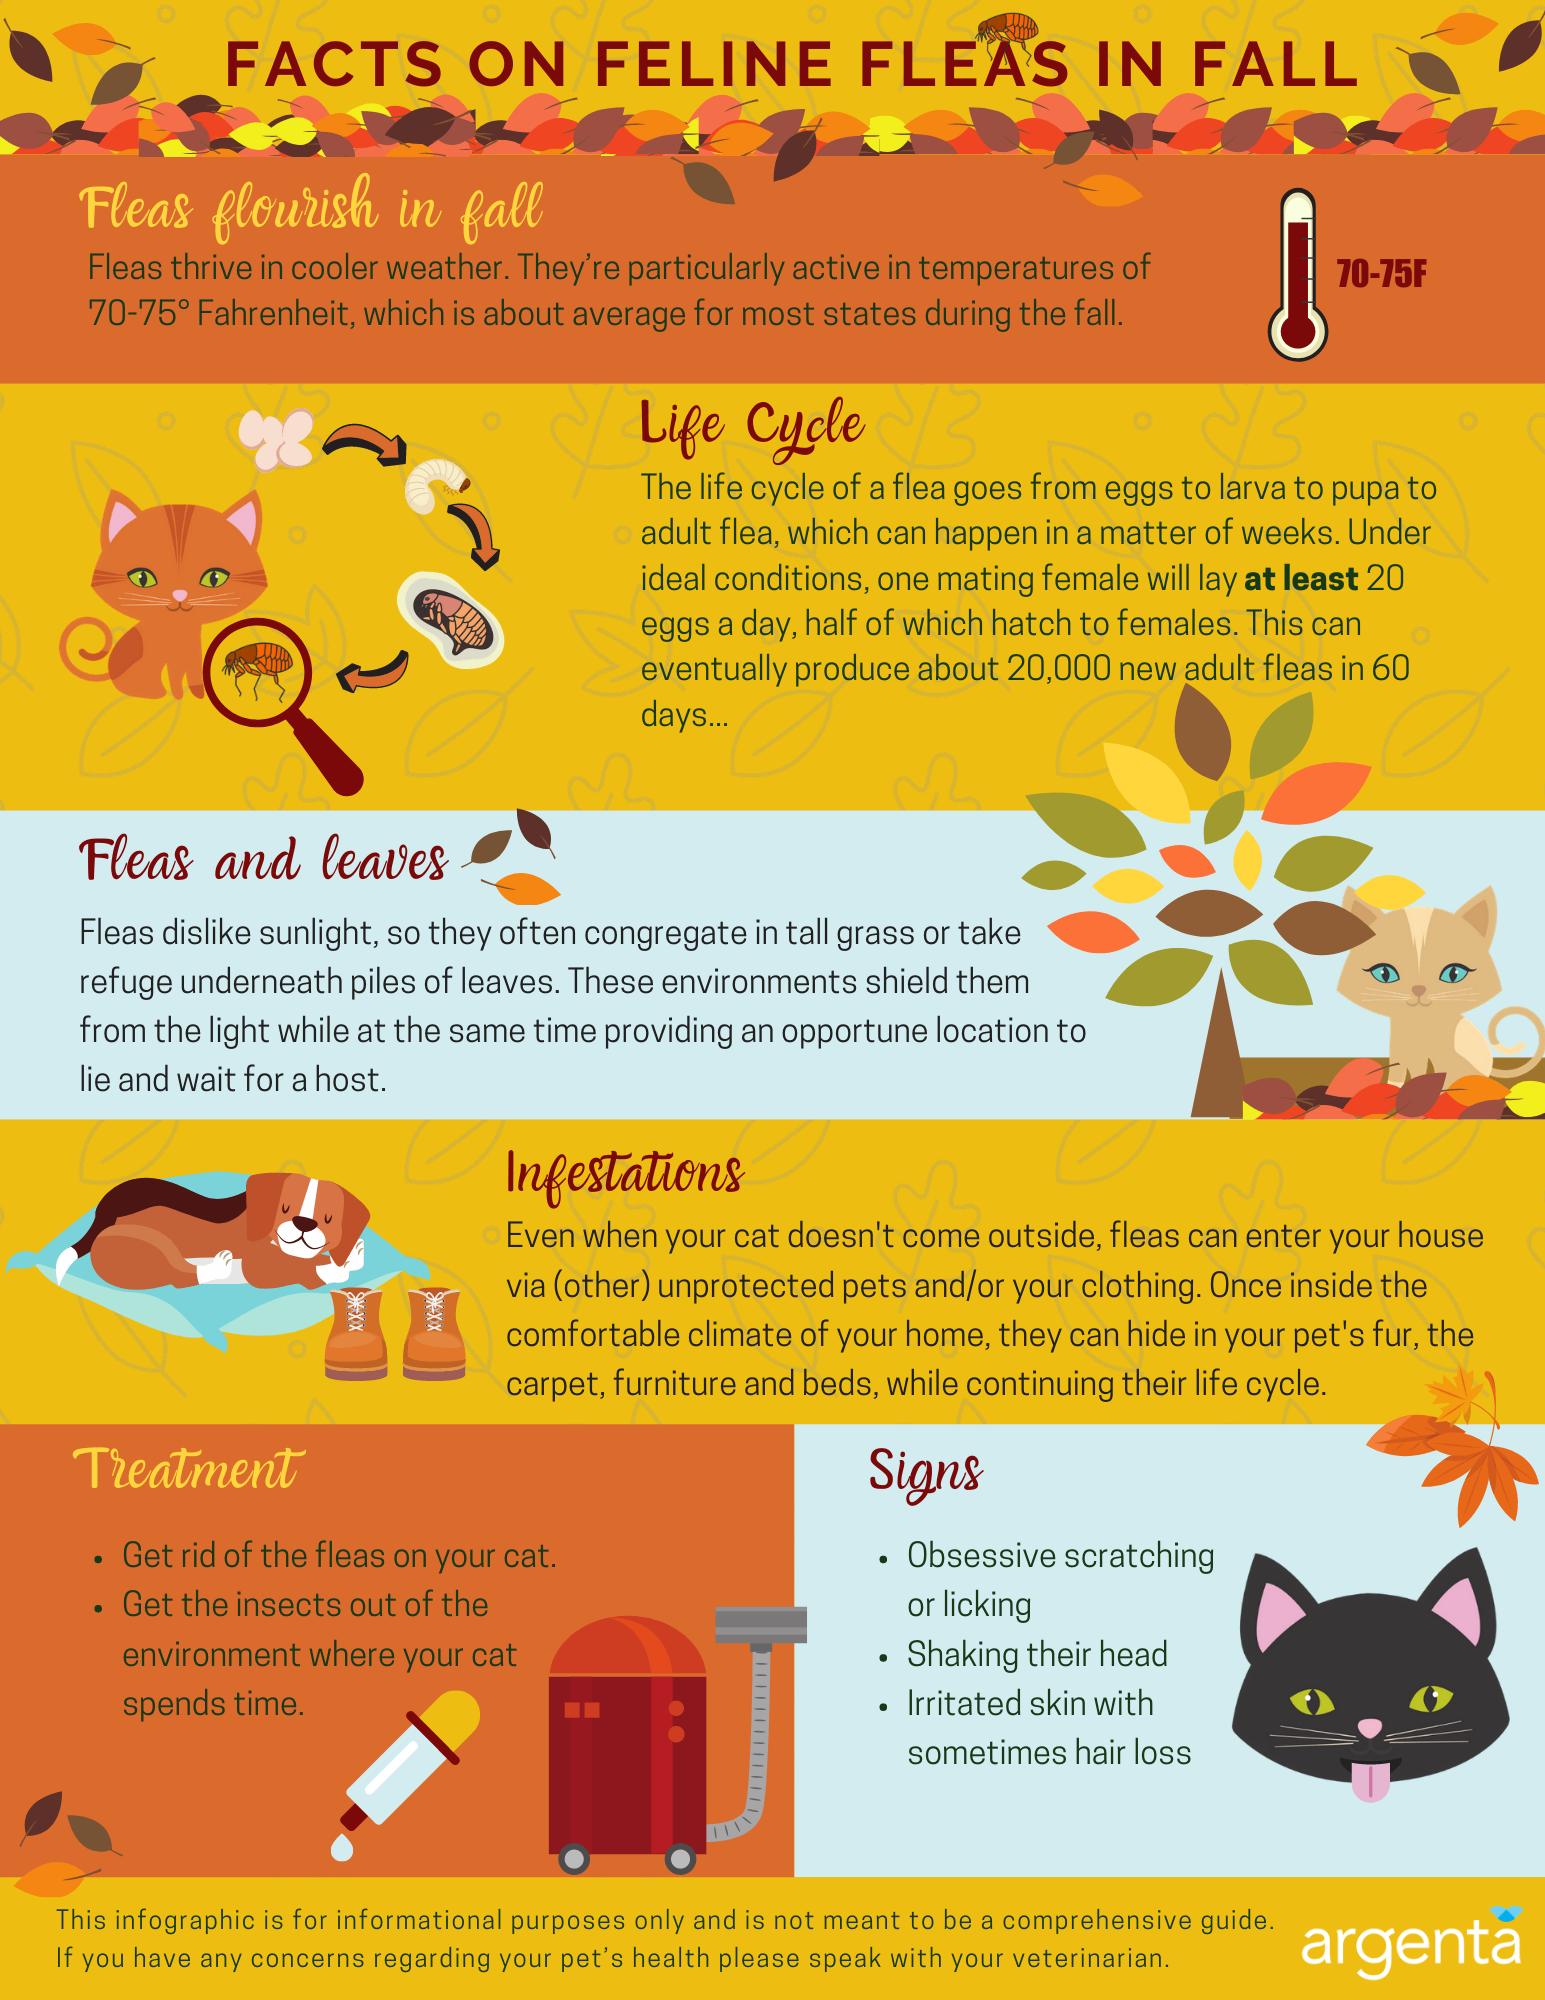 Facts on Feline Fleas in Fall